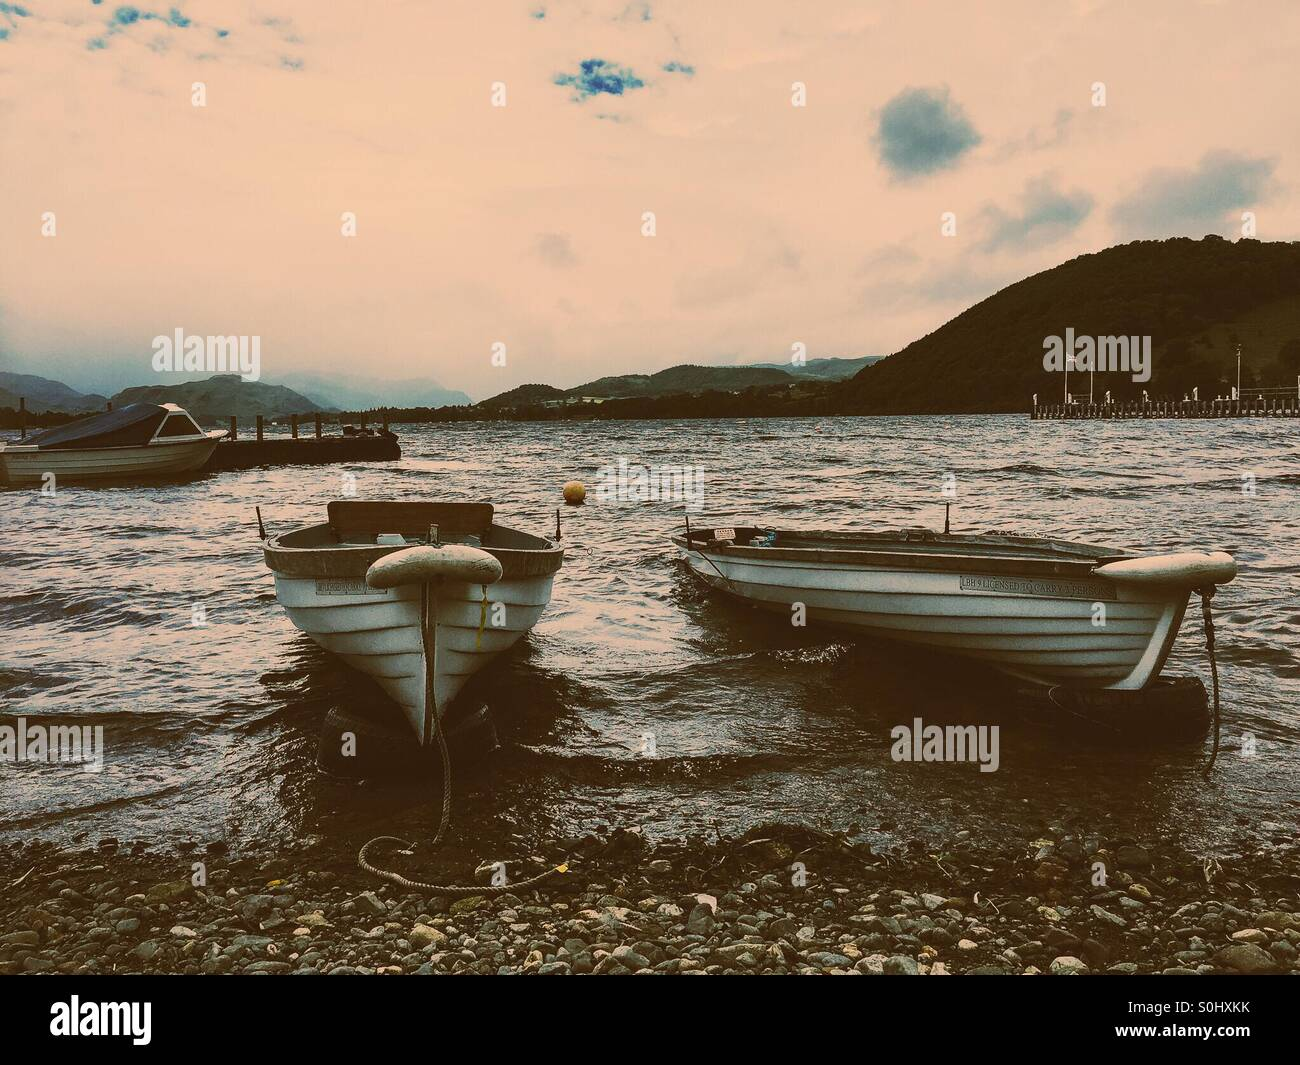 Rowing boats on Ullswater lake - Stock Image